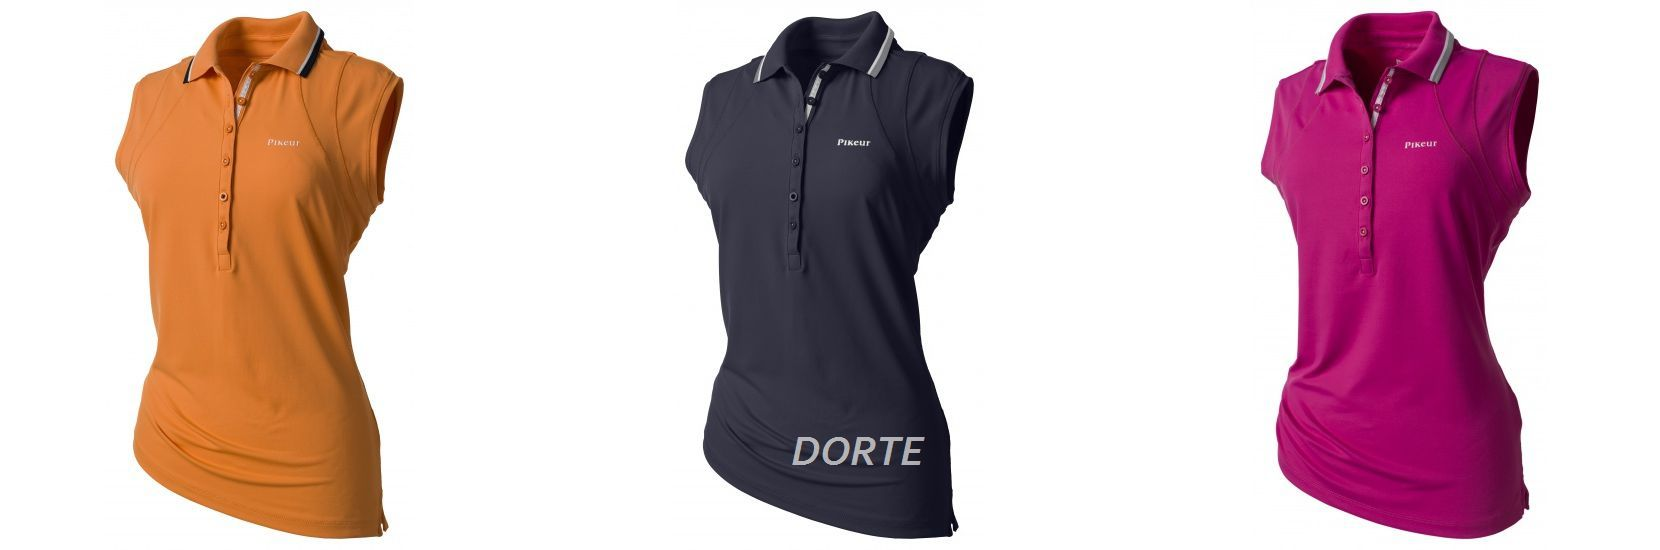 Polo Shirt Want It Have It